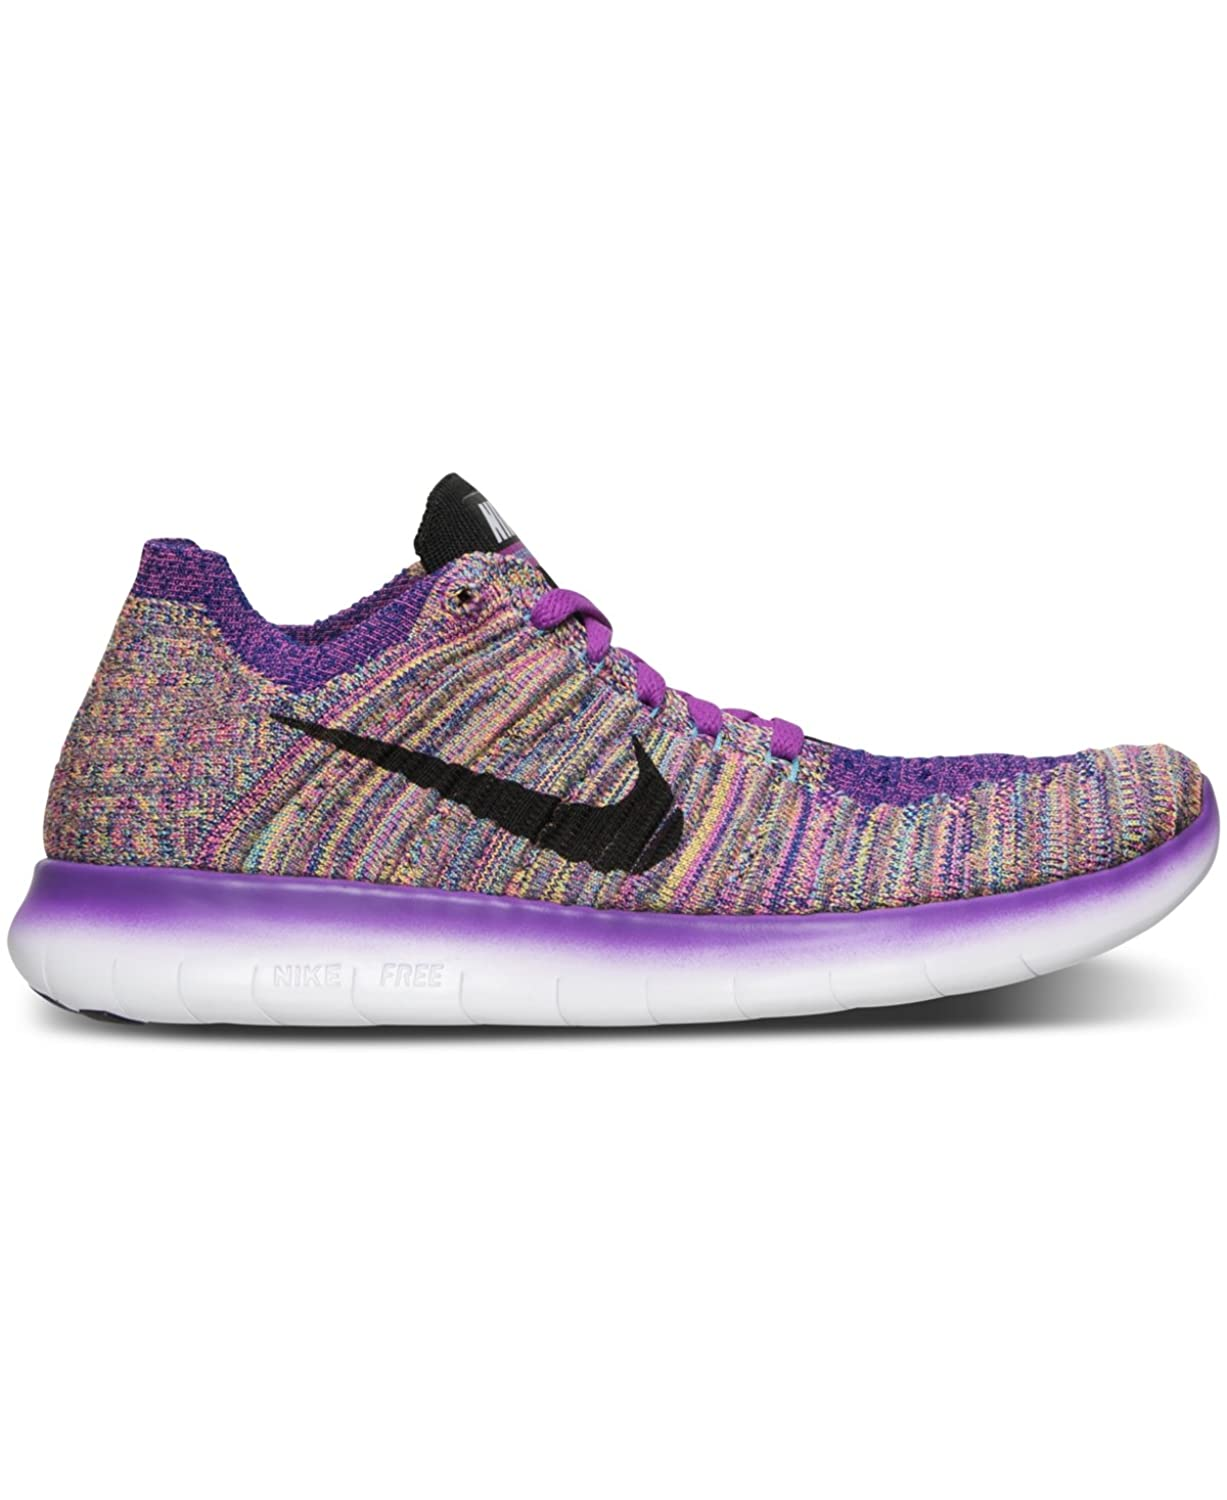 04ca1a6552f2a ... closeout amazon nike womens free running motion flyknit shoes hyper  violet gamma blue concord black 5